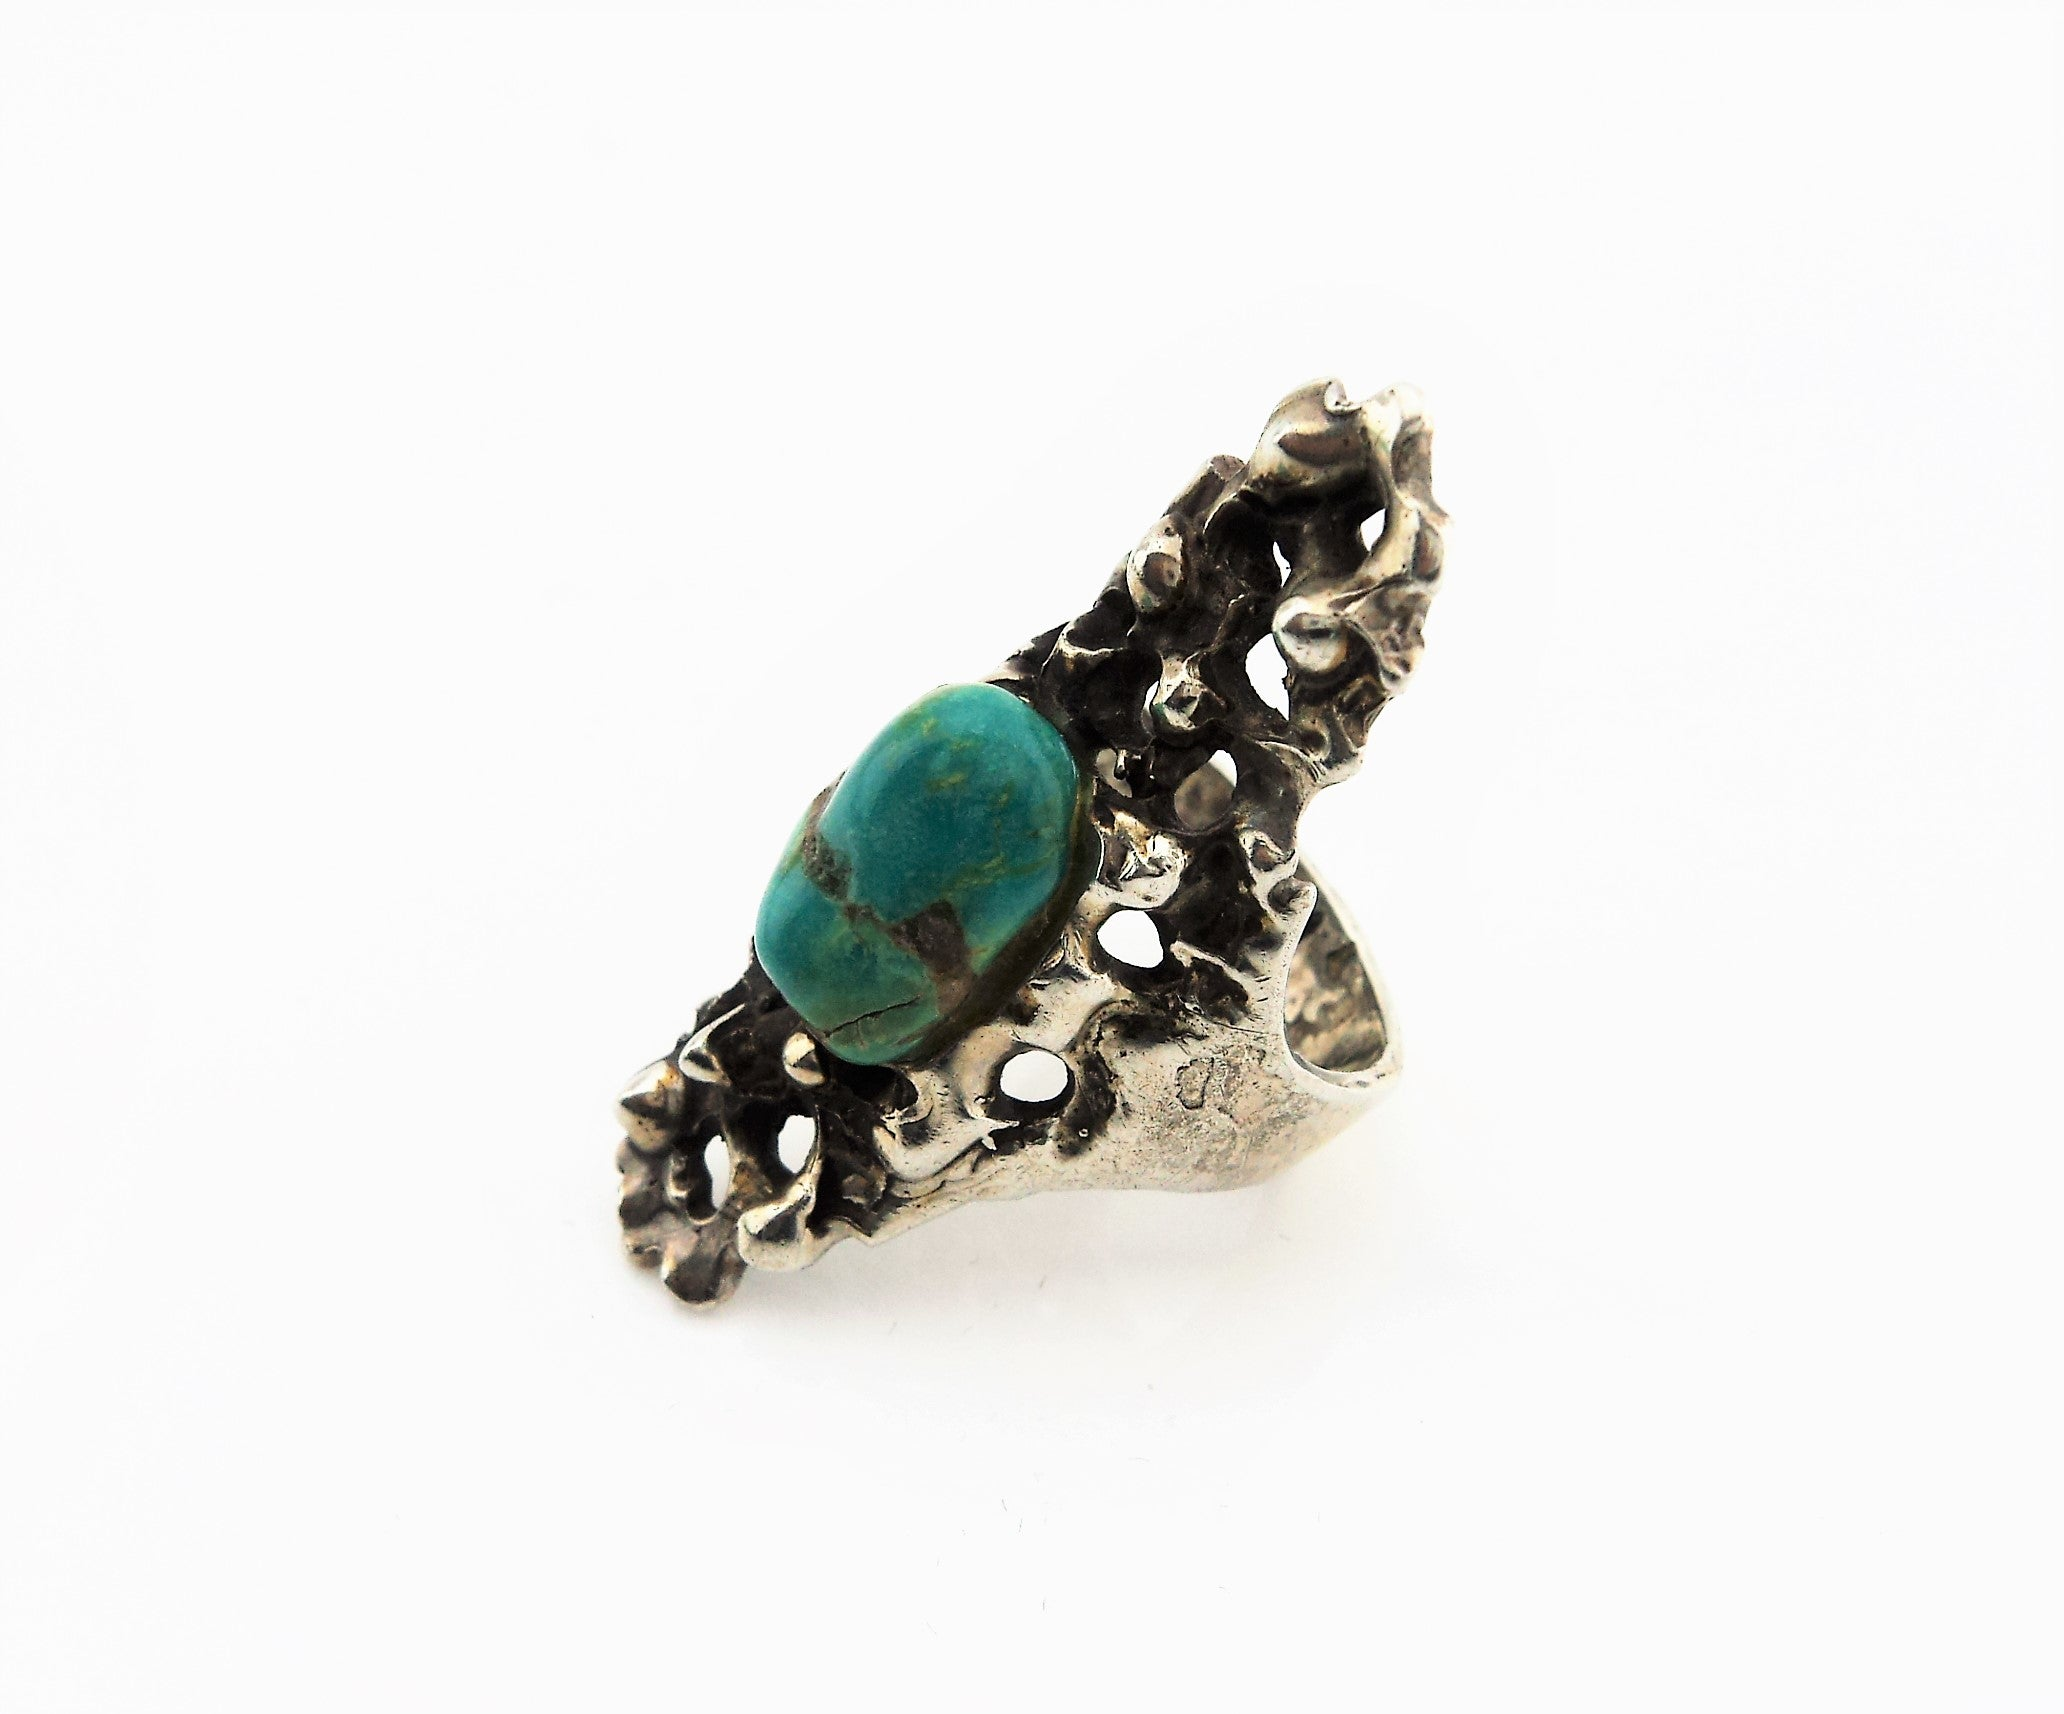 Sand Cast Sterling Silver Turquoise Ring